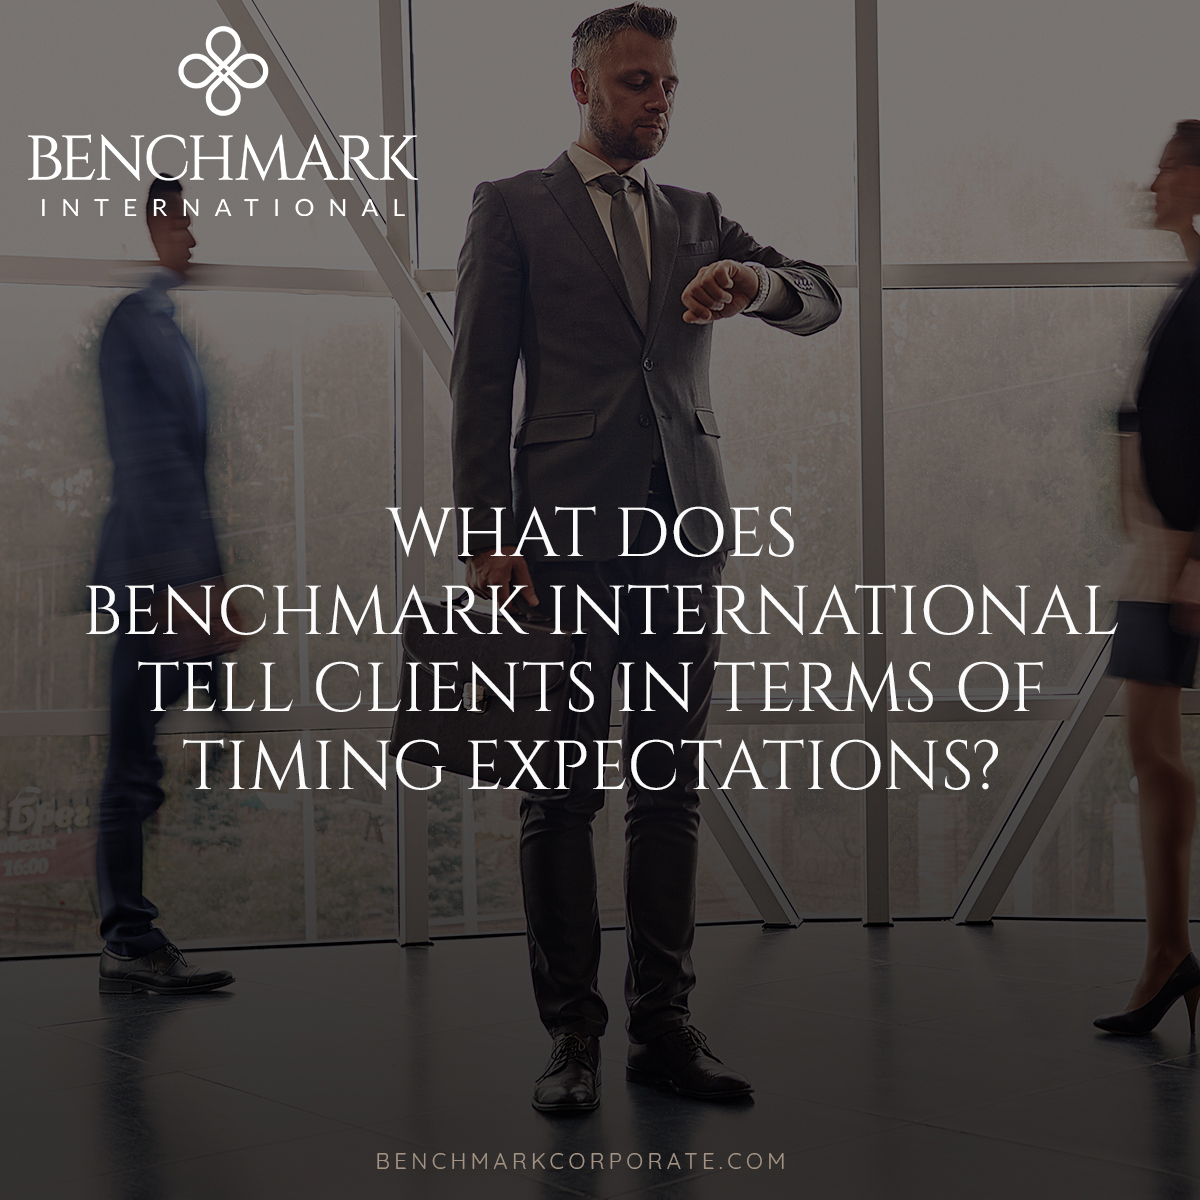 Clients_Timing_Expectations-Social-1